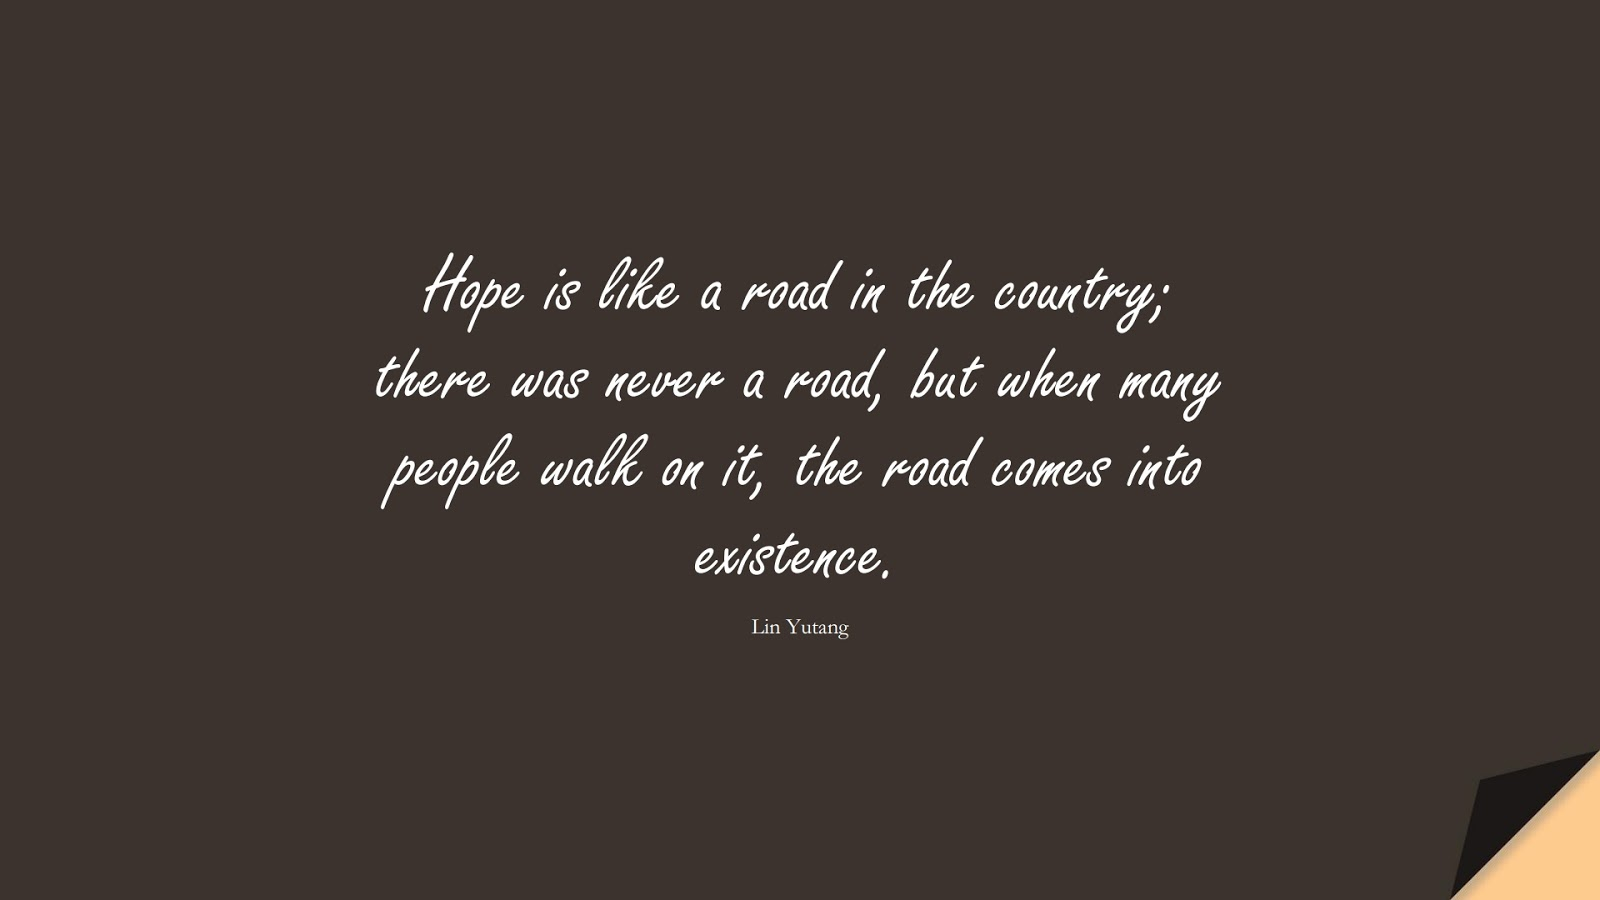 Hope is like a road in the country; there was never a road, but when many people walk on it, the road comes into existence. (Lin Yutang);  #CourageQuotes